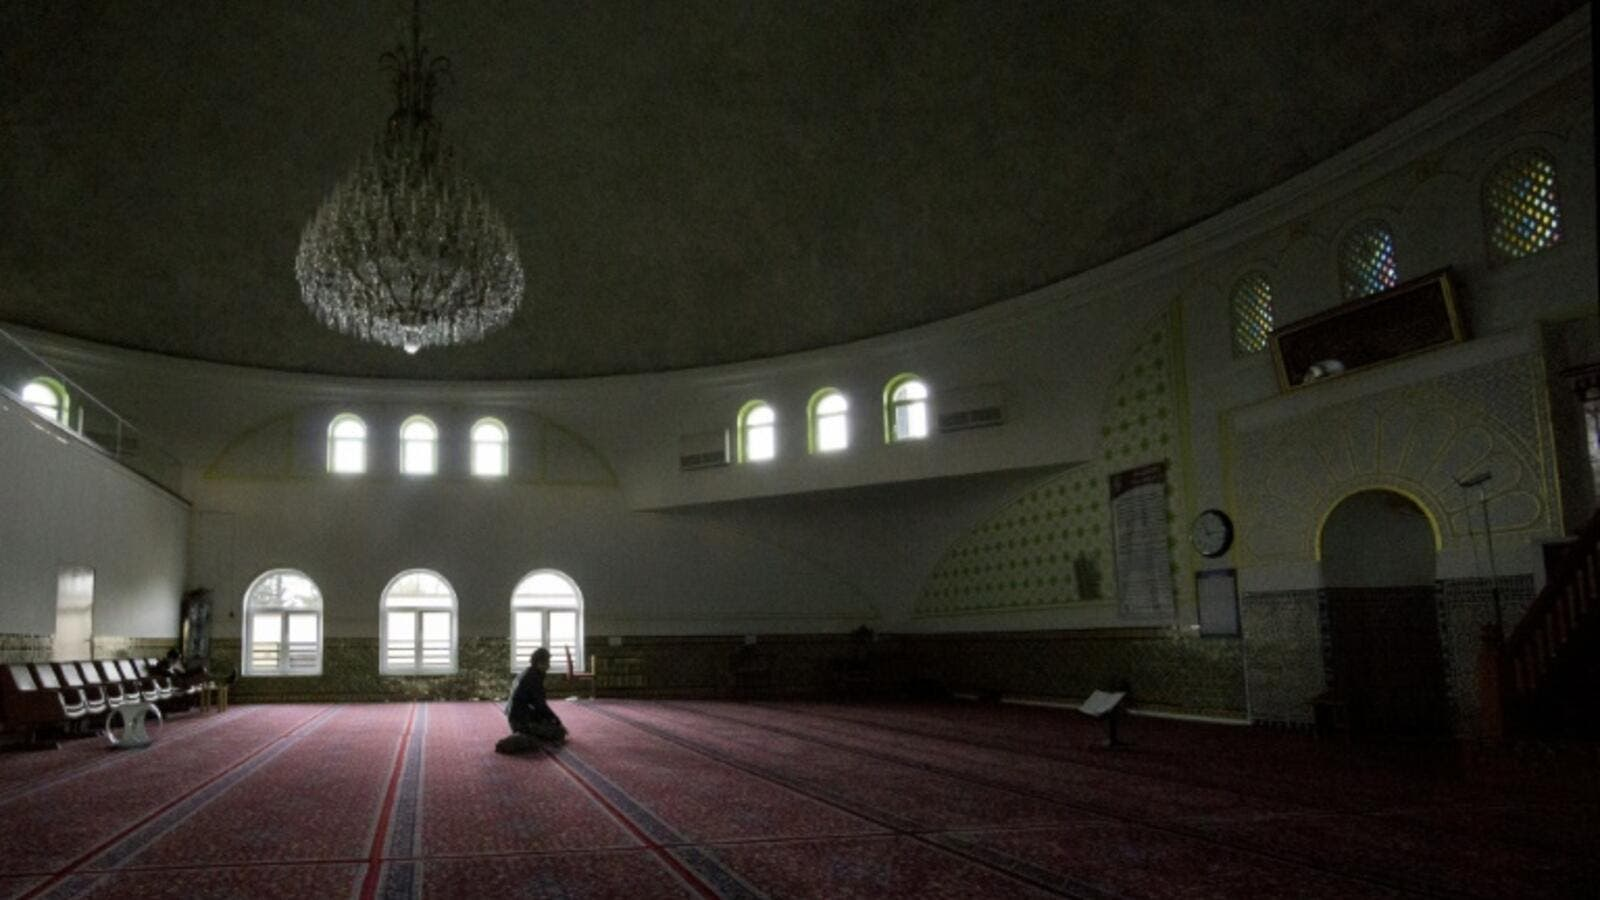 Austria is to close 7 mosques and expel 40 Imams. (AFP/ File)